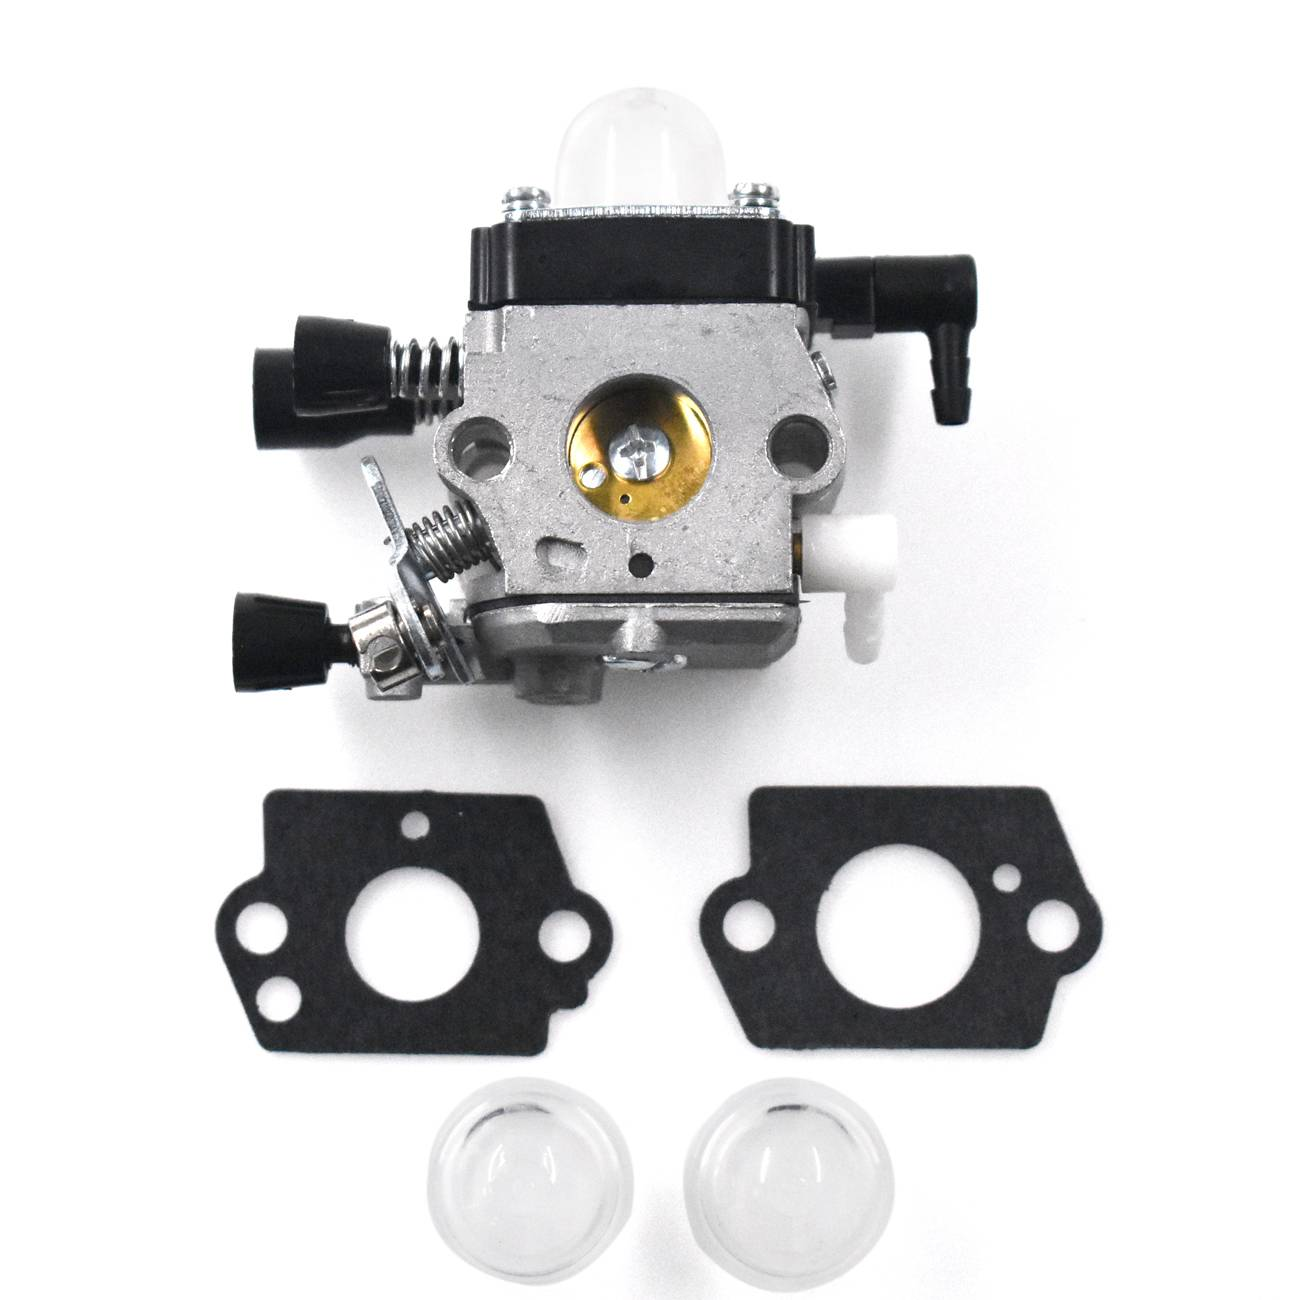 New Carburetor For STIHL FS38 FS45 FS46 FS46C FS55 FS55R KM55R C1Q-S97A Carb стоимость